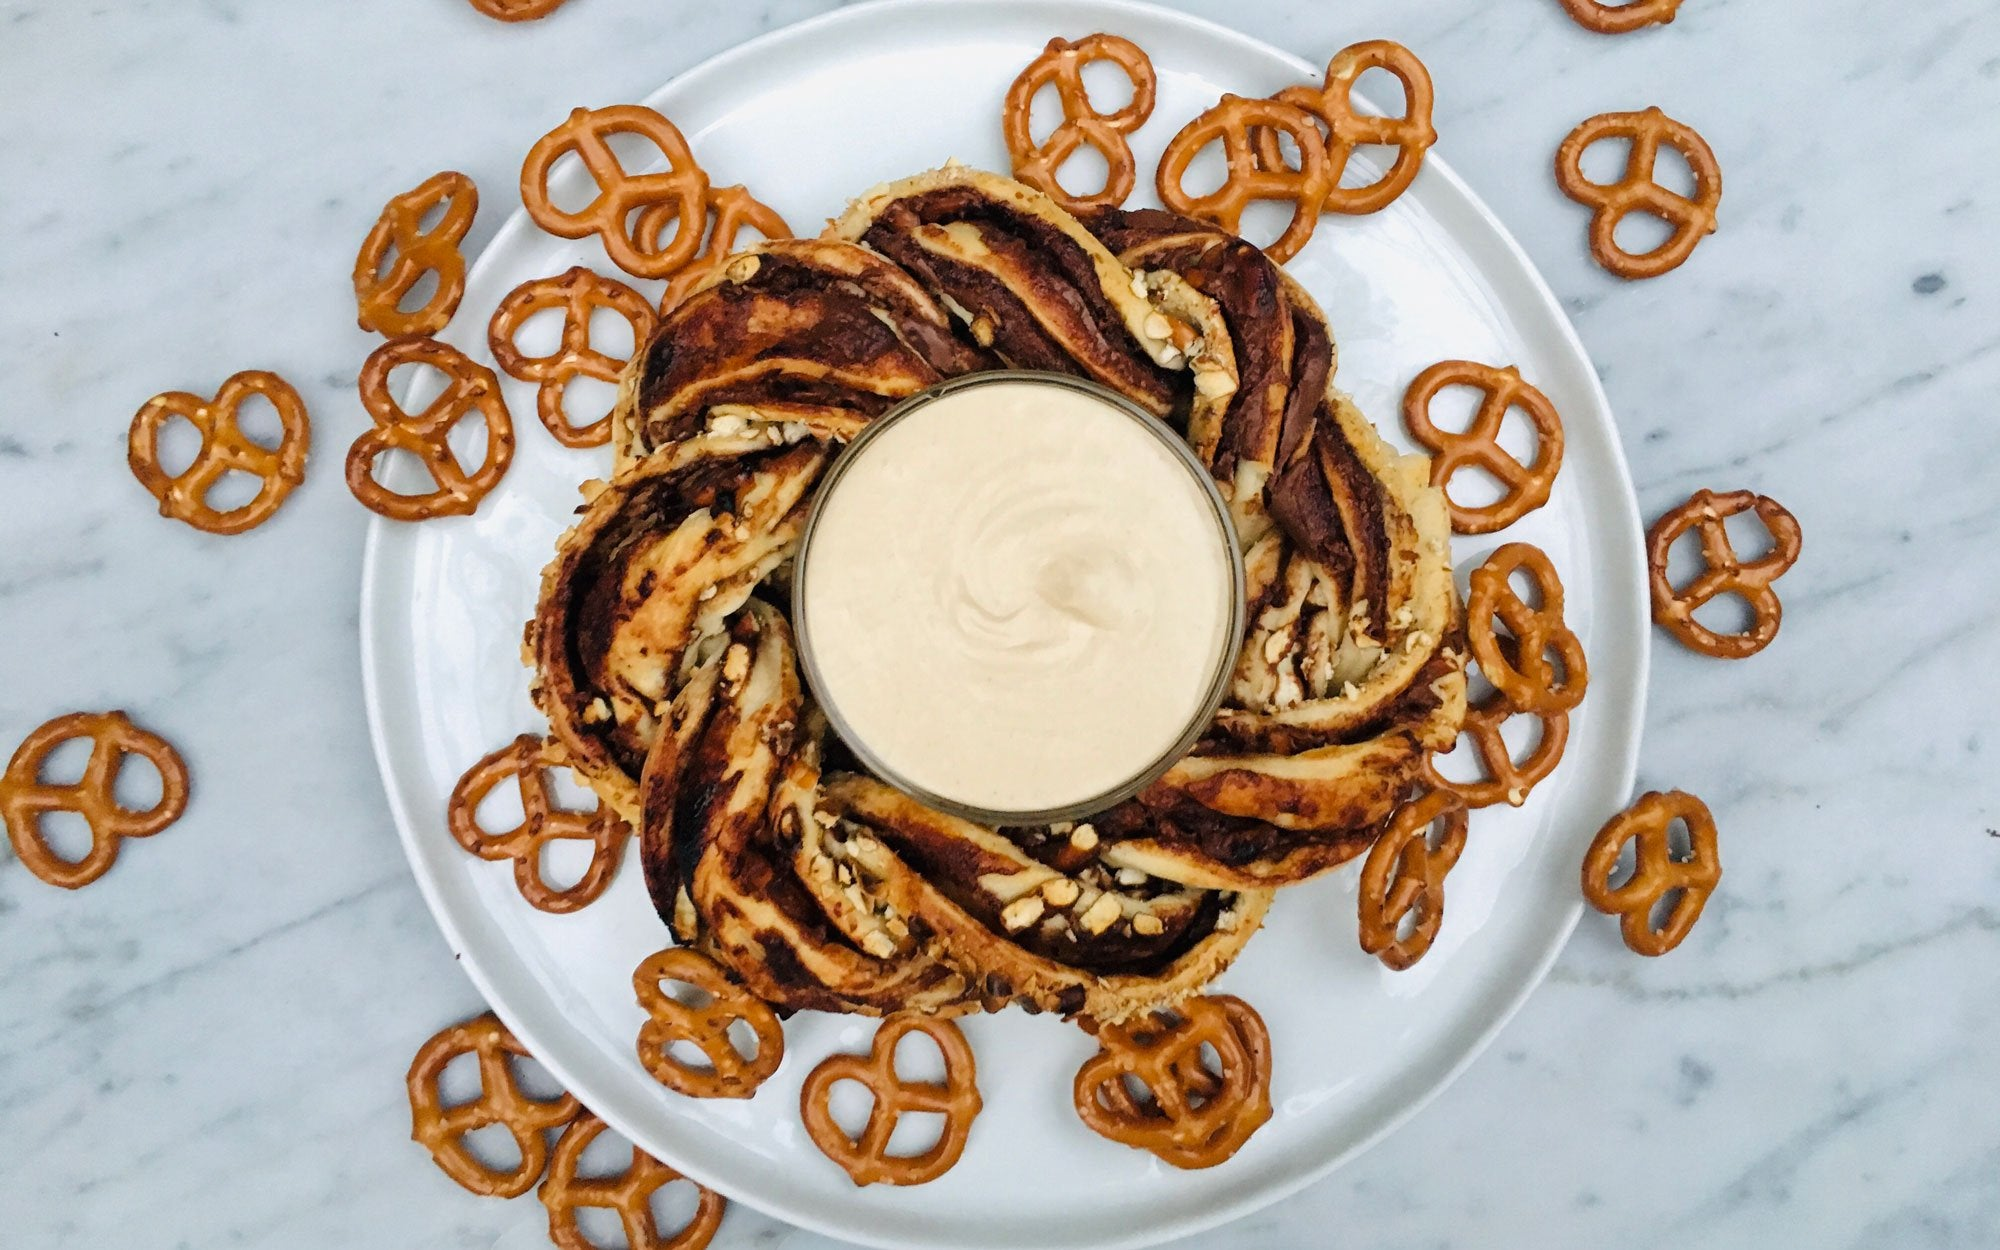 Braided Nutella & Crushed Pretzel Ring Featured Image